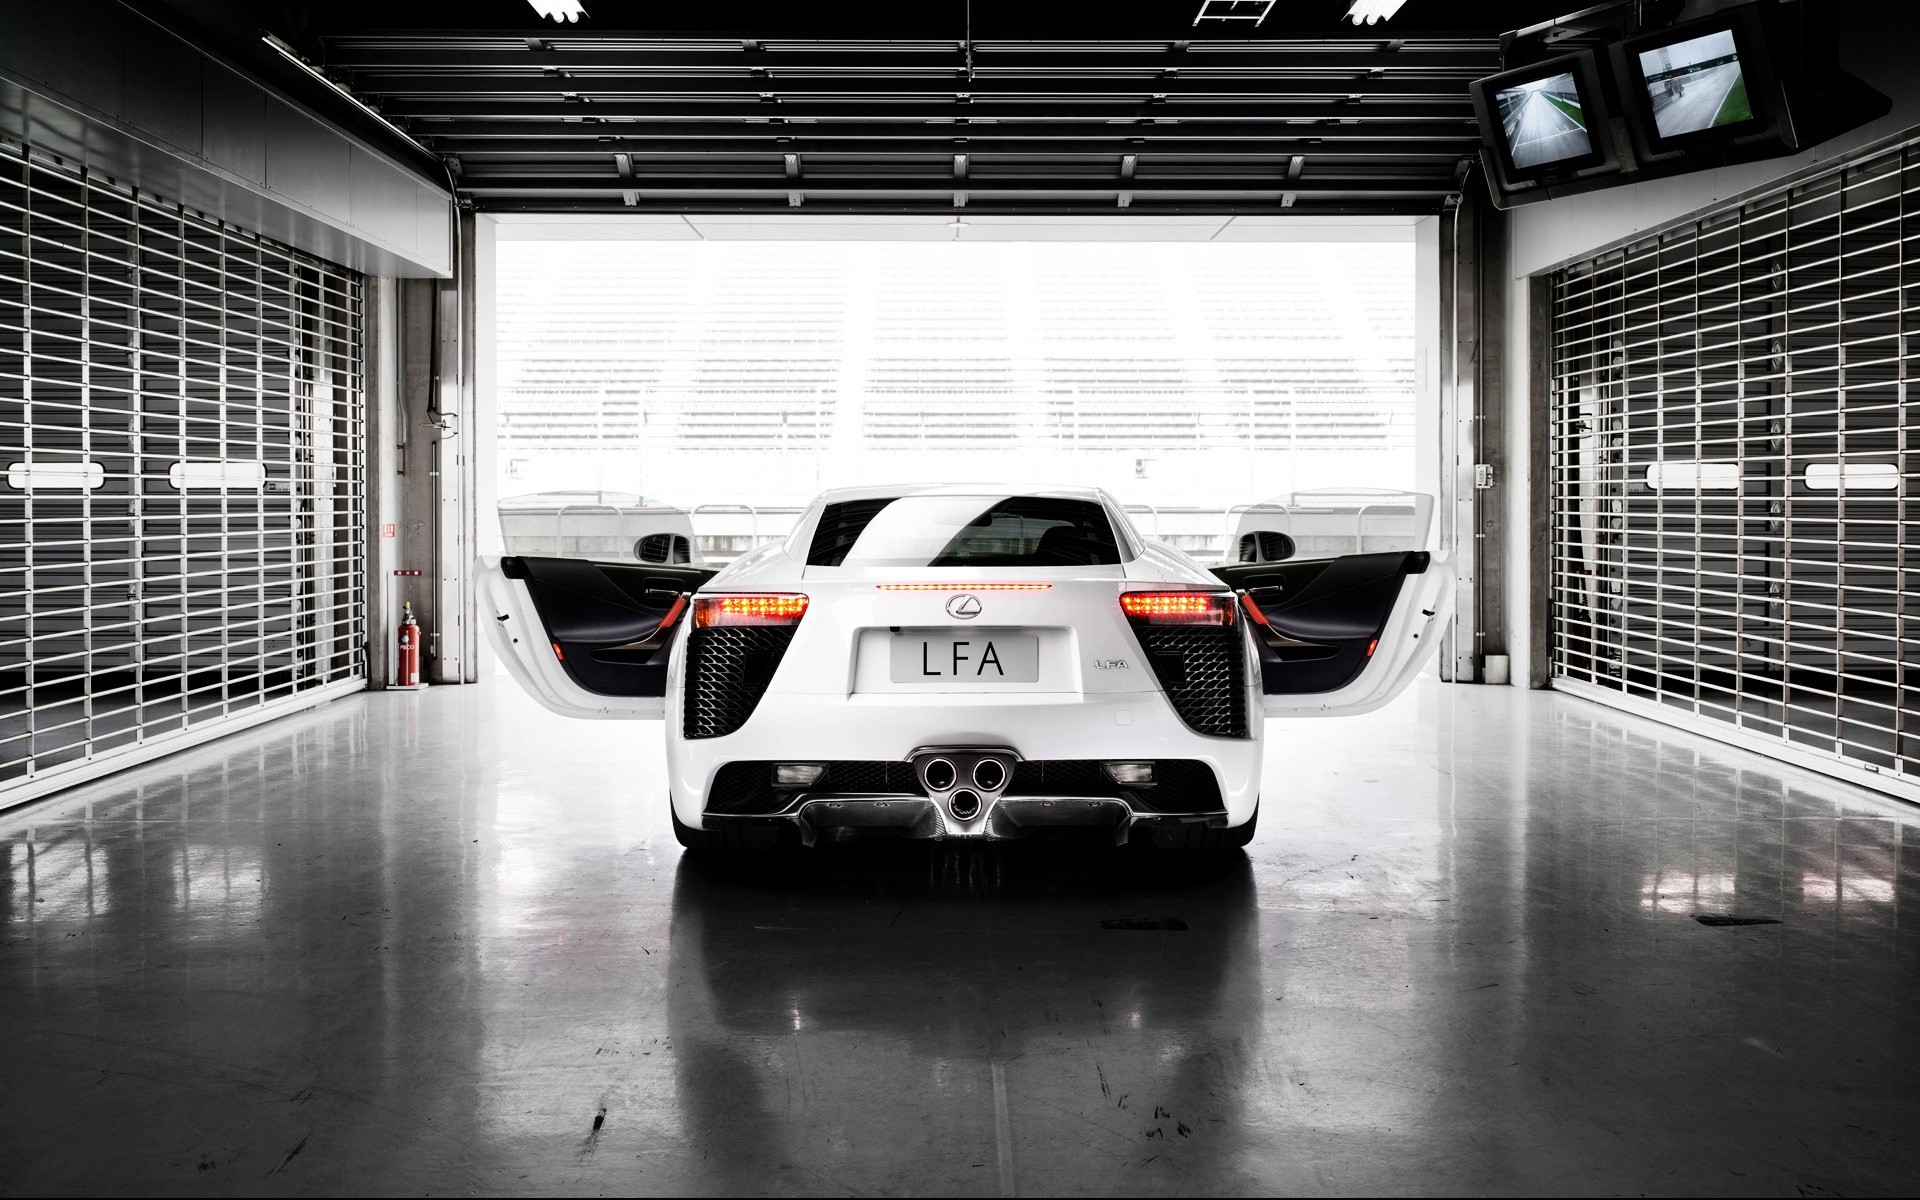 lexus car vehicle transportation system indoors light window urban lexus lfa